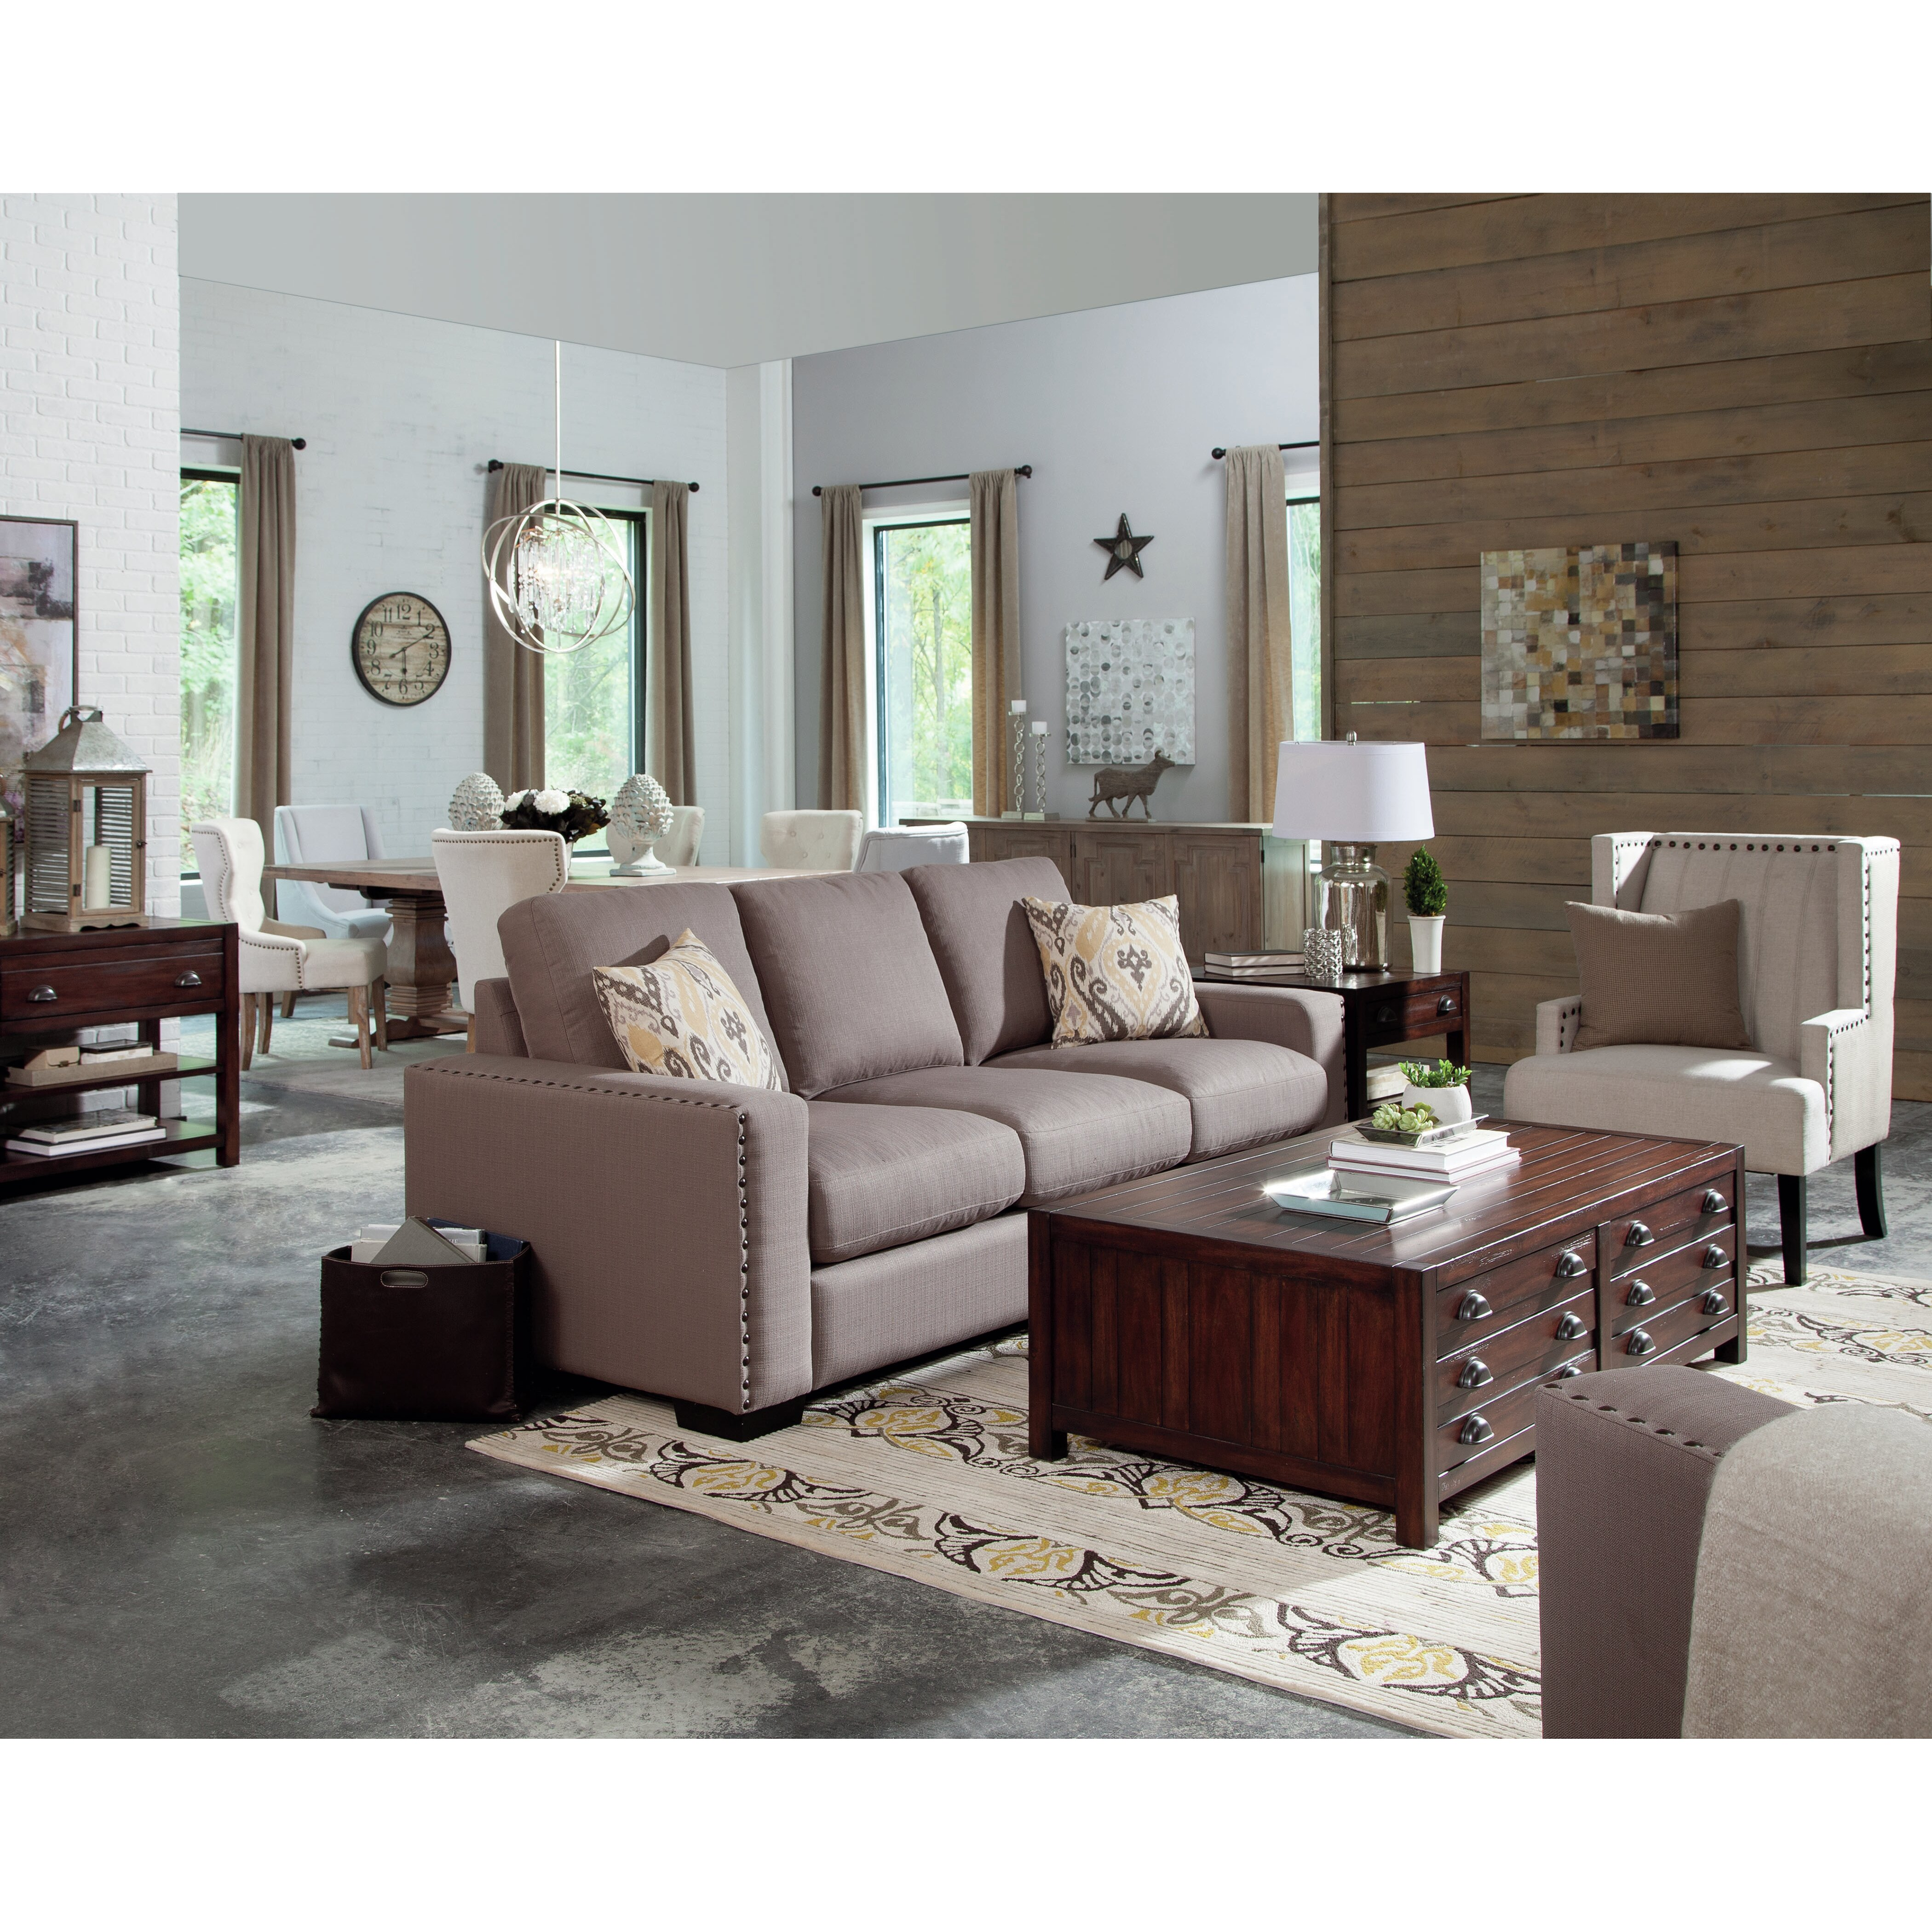 Donny Osmond Storage Bedroom Bench Reviews: Donny Osmond Florence Side Chair & Reviews